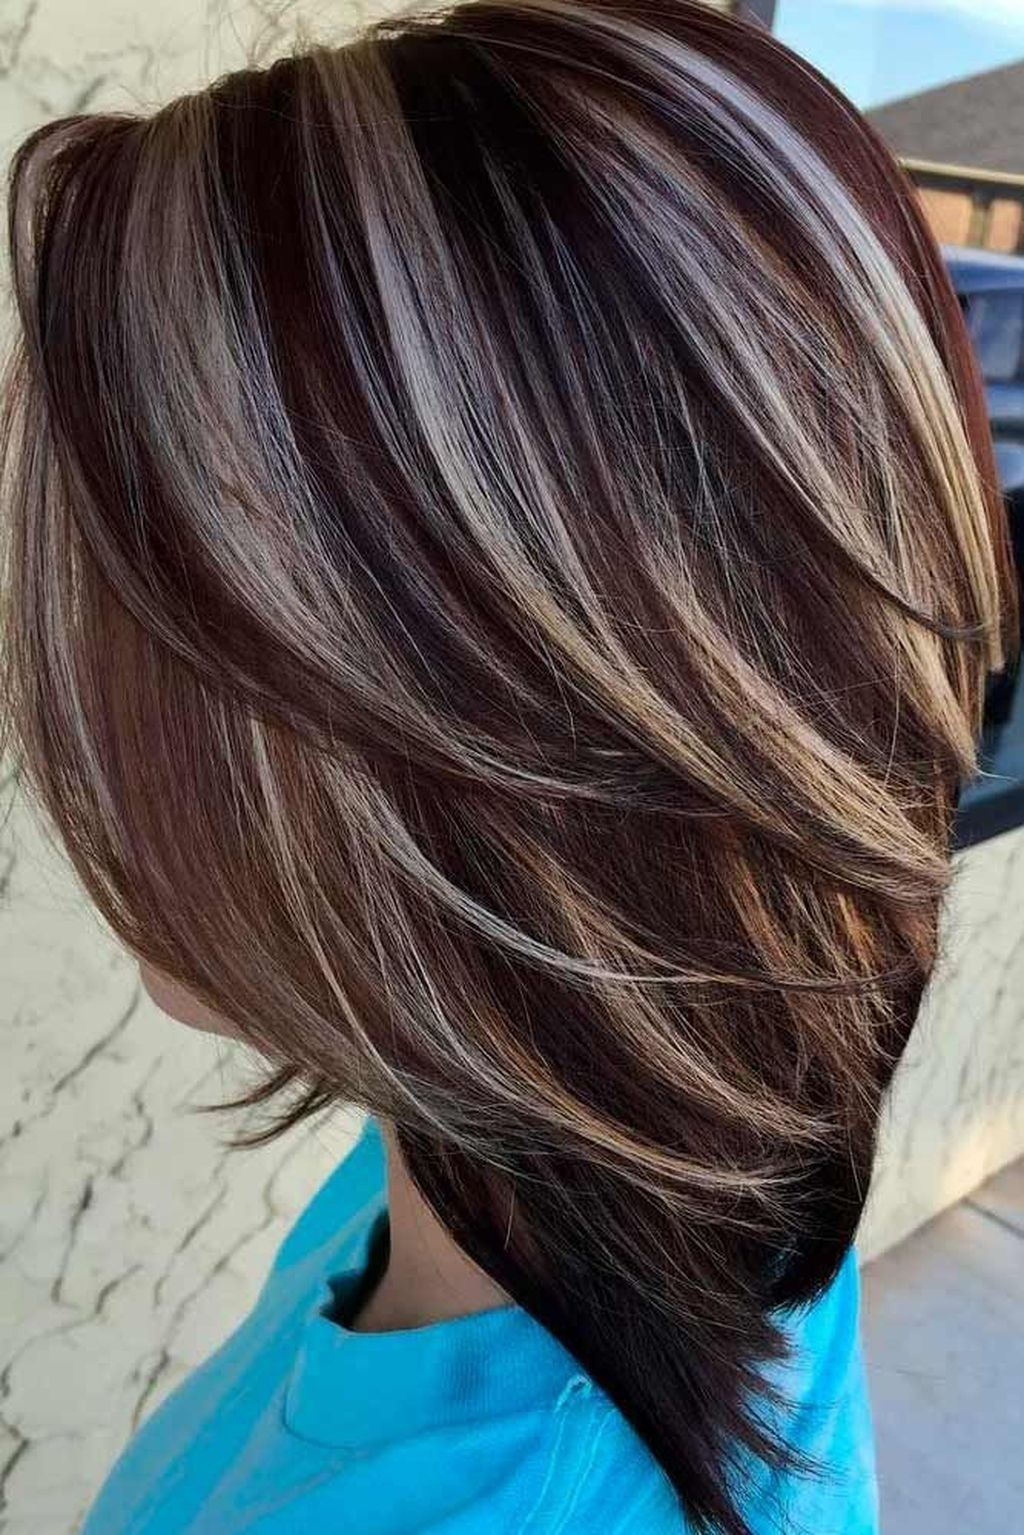 61 Cool Short Ombre Hair Color Ideas Hair Coloring Hair Style And